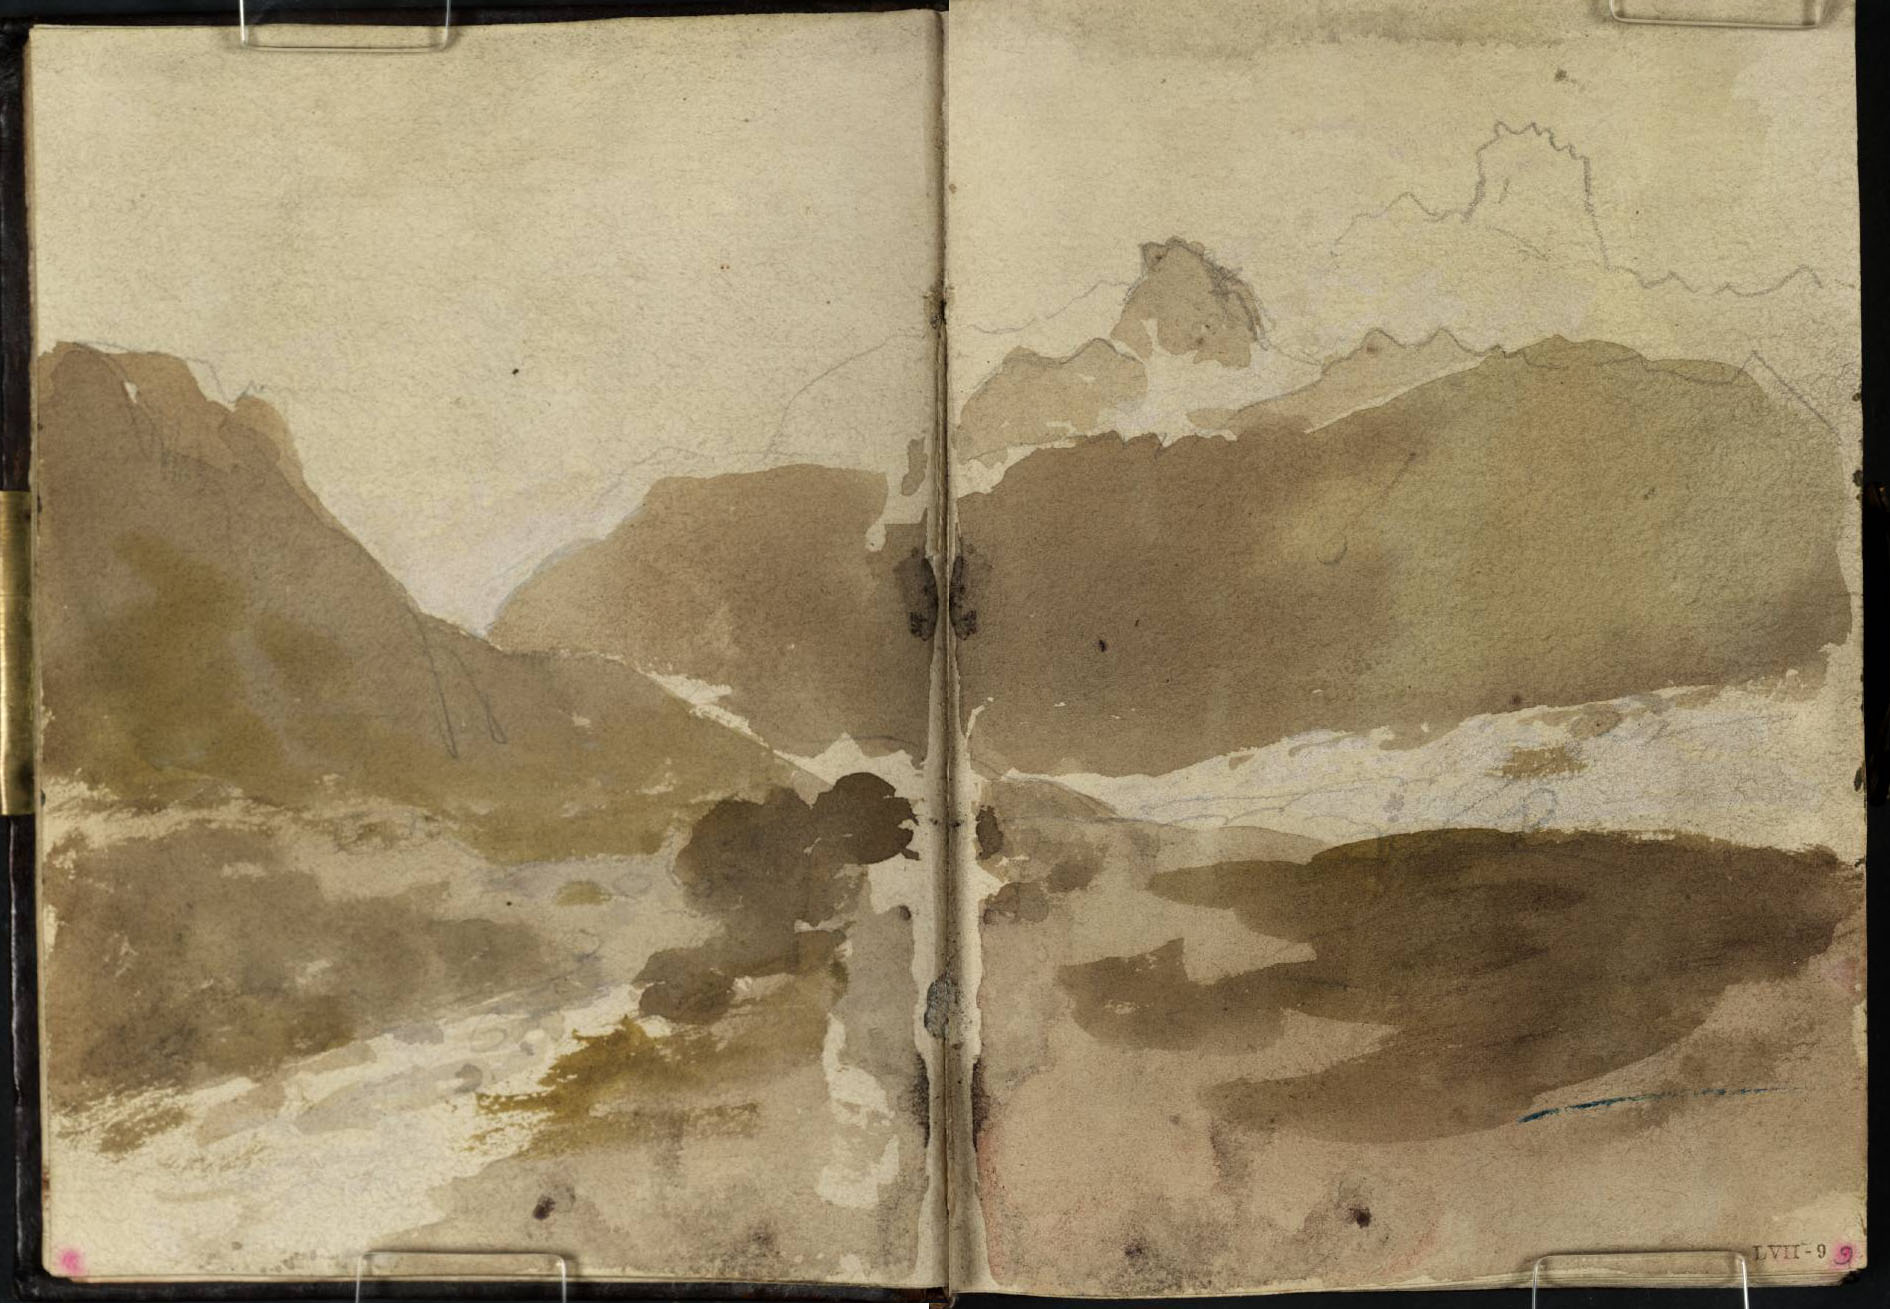 J M W Turner Ben Arthur from the entrance to Glen Croe above Ardgartan, 1801 Pencil and sepia washes on paper, 149 x 218 mm (page size, 149 x 109 mm) from the 'Tummel Bridge' sketchbook, Tate, London, D03292-93, Turner Bequest TB LVII 8a-9 as 'Looking up Glenkinglas from Cairndow'. Image courtesy of Tate. To see the image in the Tate's own online catalogue, click on the following link, and then use your browser's 'back' button to return to this page: http://www.tate.org.uk/art/sketchbook/tummel-bridge-sketchbook-65708/19